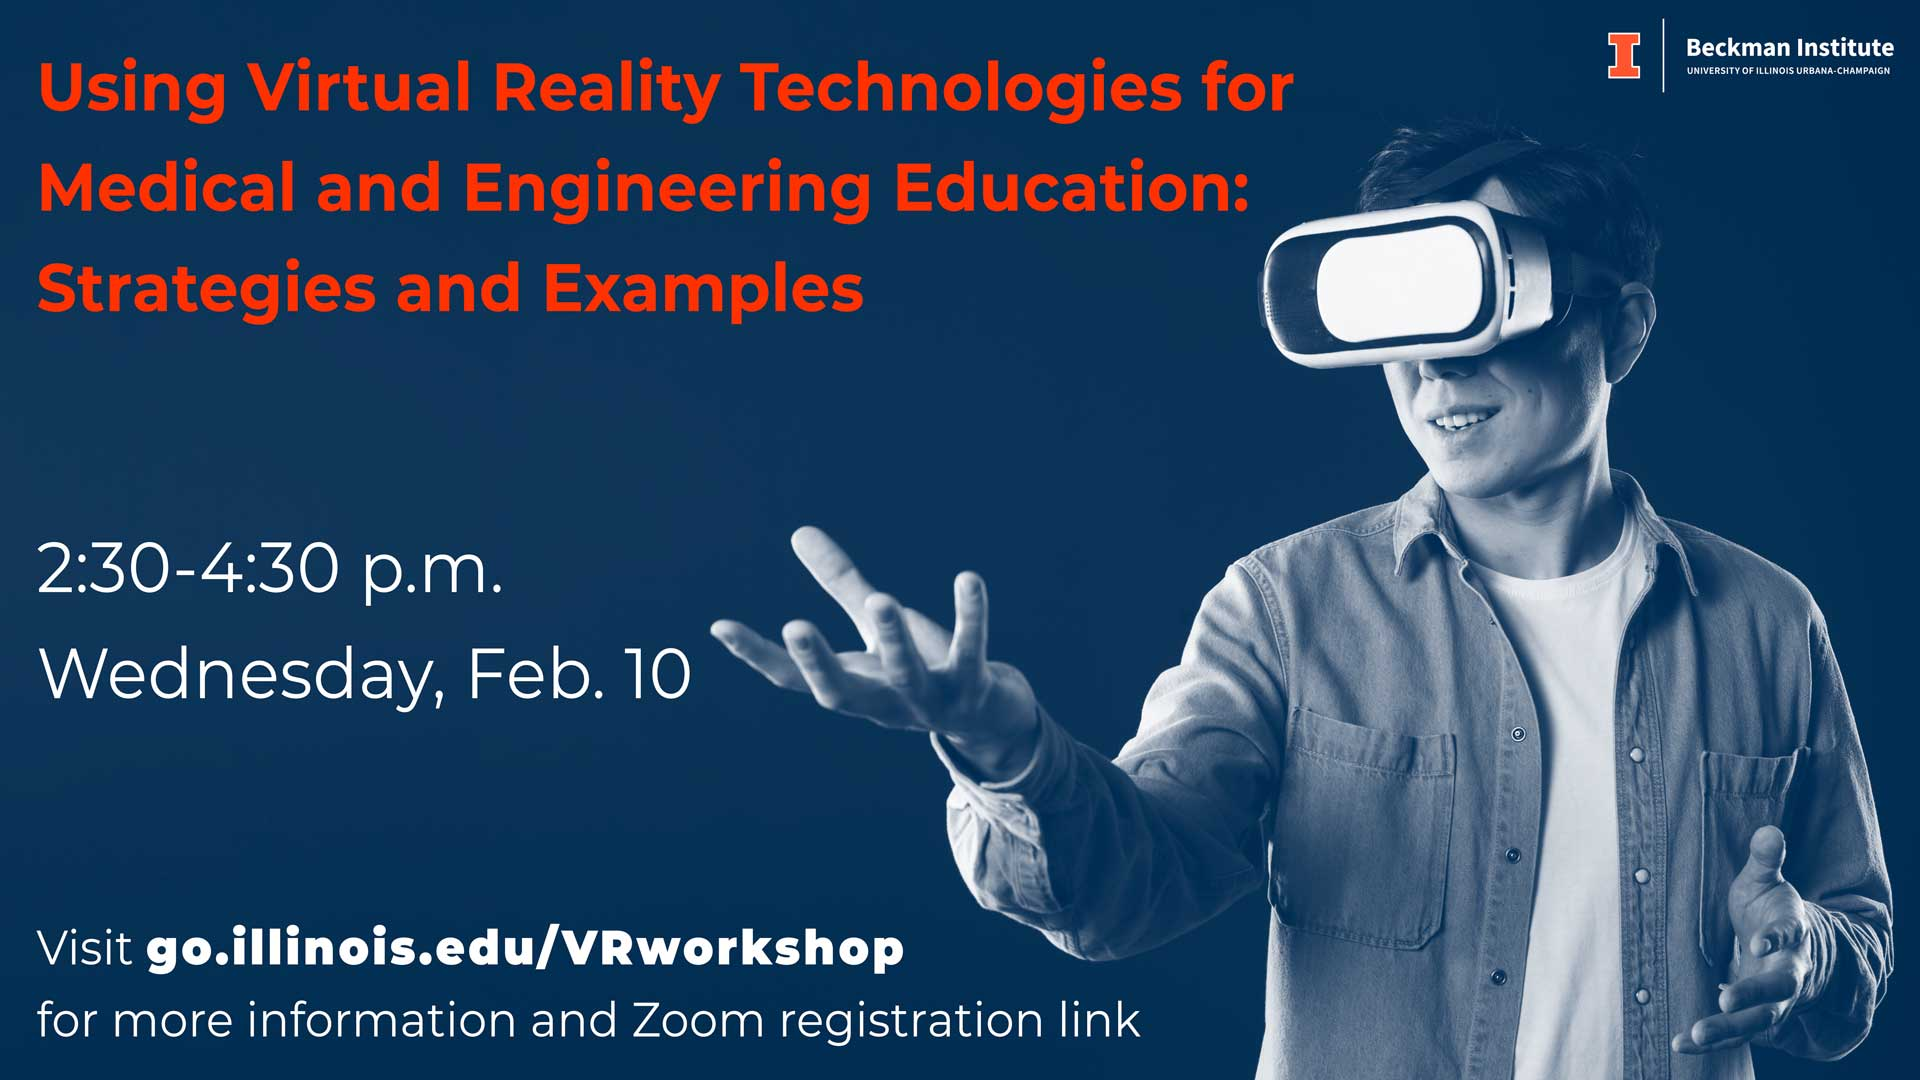 Using Virtual Reality Technologies for Medical and Engineering Education: Strategies and Examples